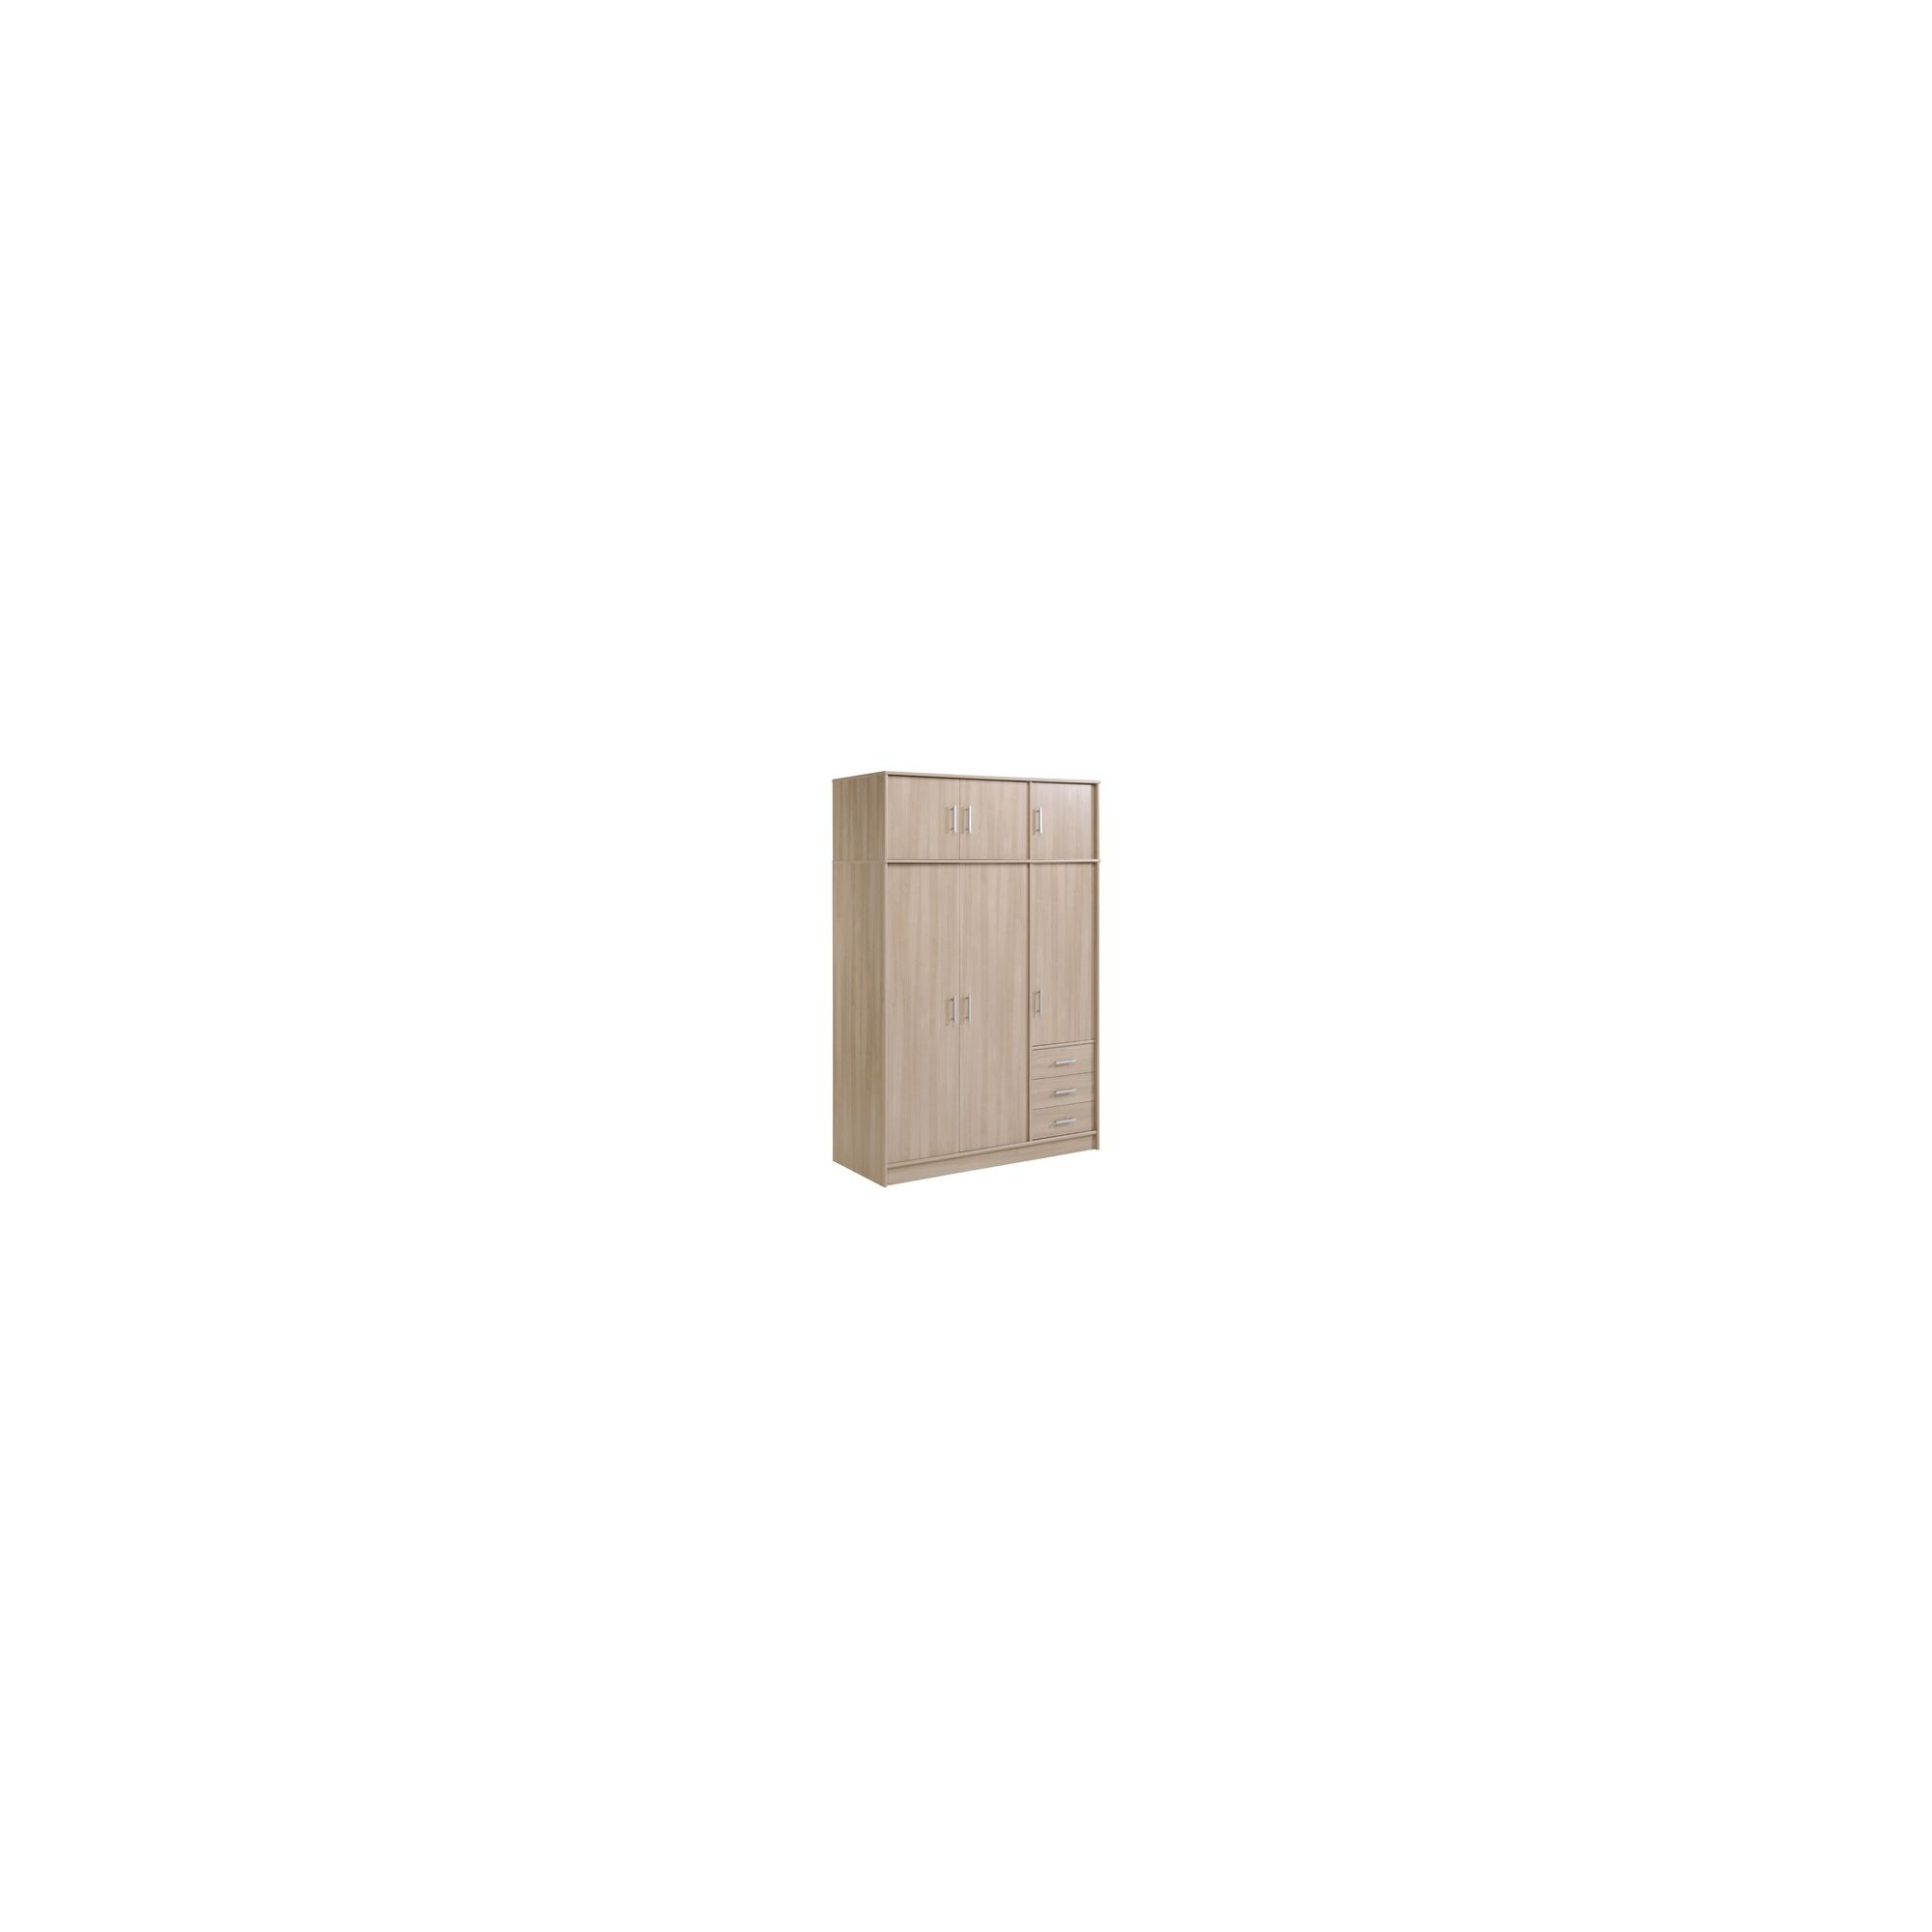 Parisot Essential Wardrobe with 6 Doors and 3 Drawers - Cherry at Tescos Direct